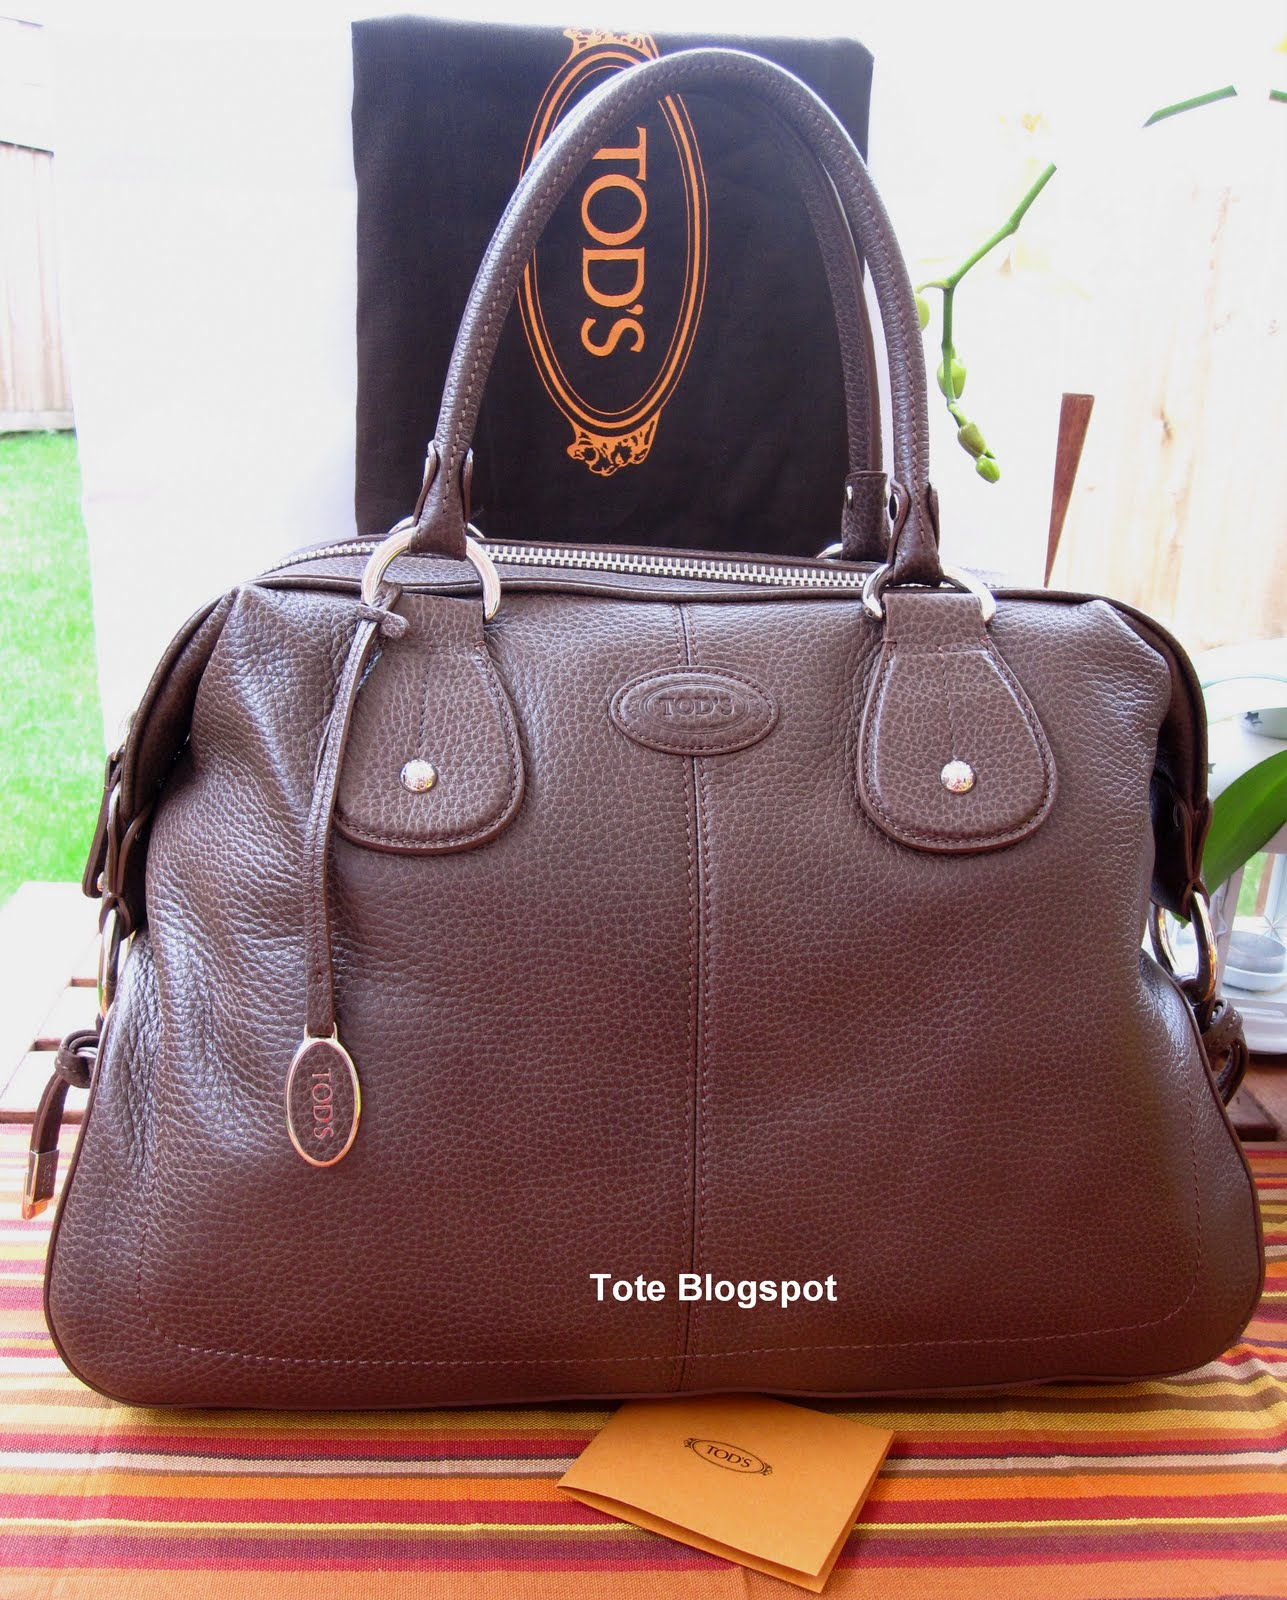 379b549ff66 Tote to Toe: TOD'S NEW RESTYLING D BAG BAULETTO MEDIA